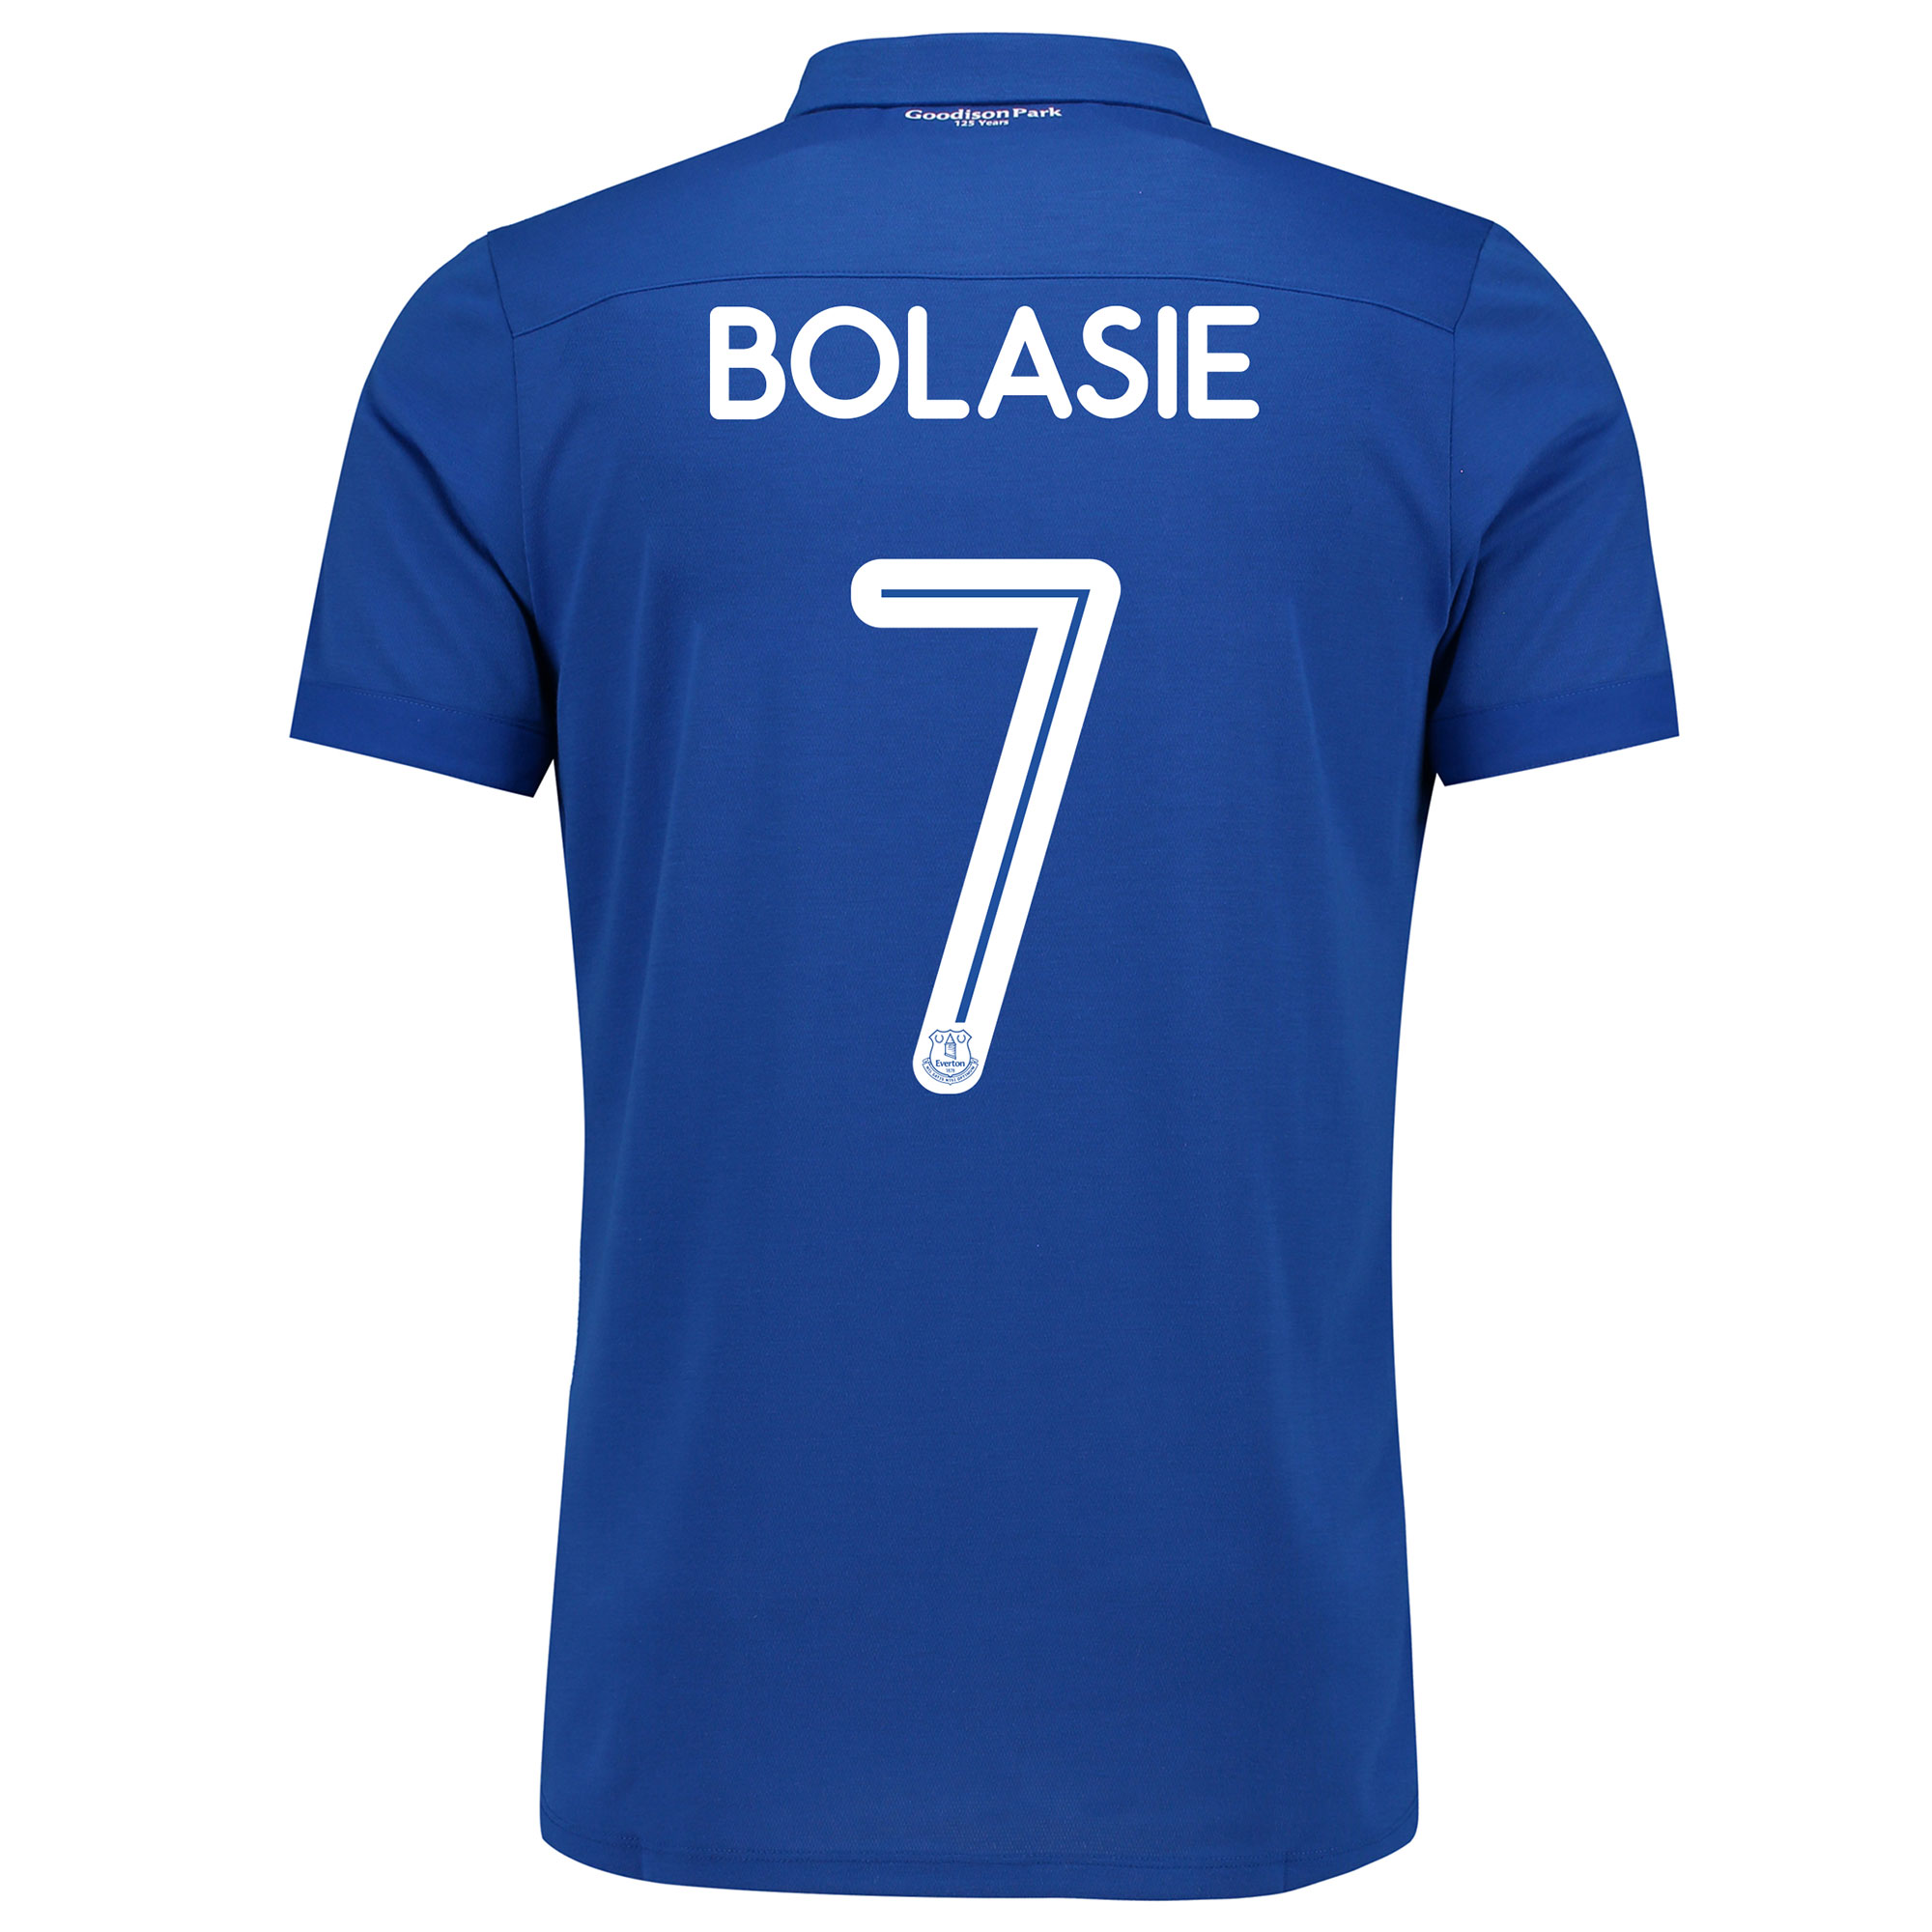 Image of Everton Commemorative Shirt with Bolasie 7 printing